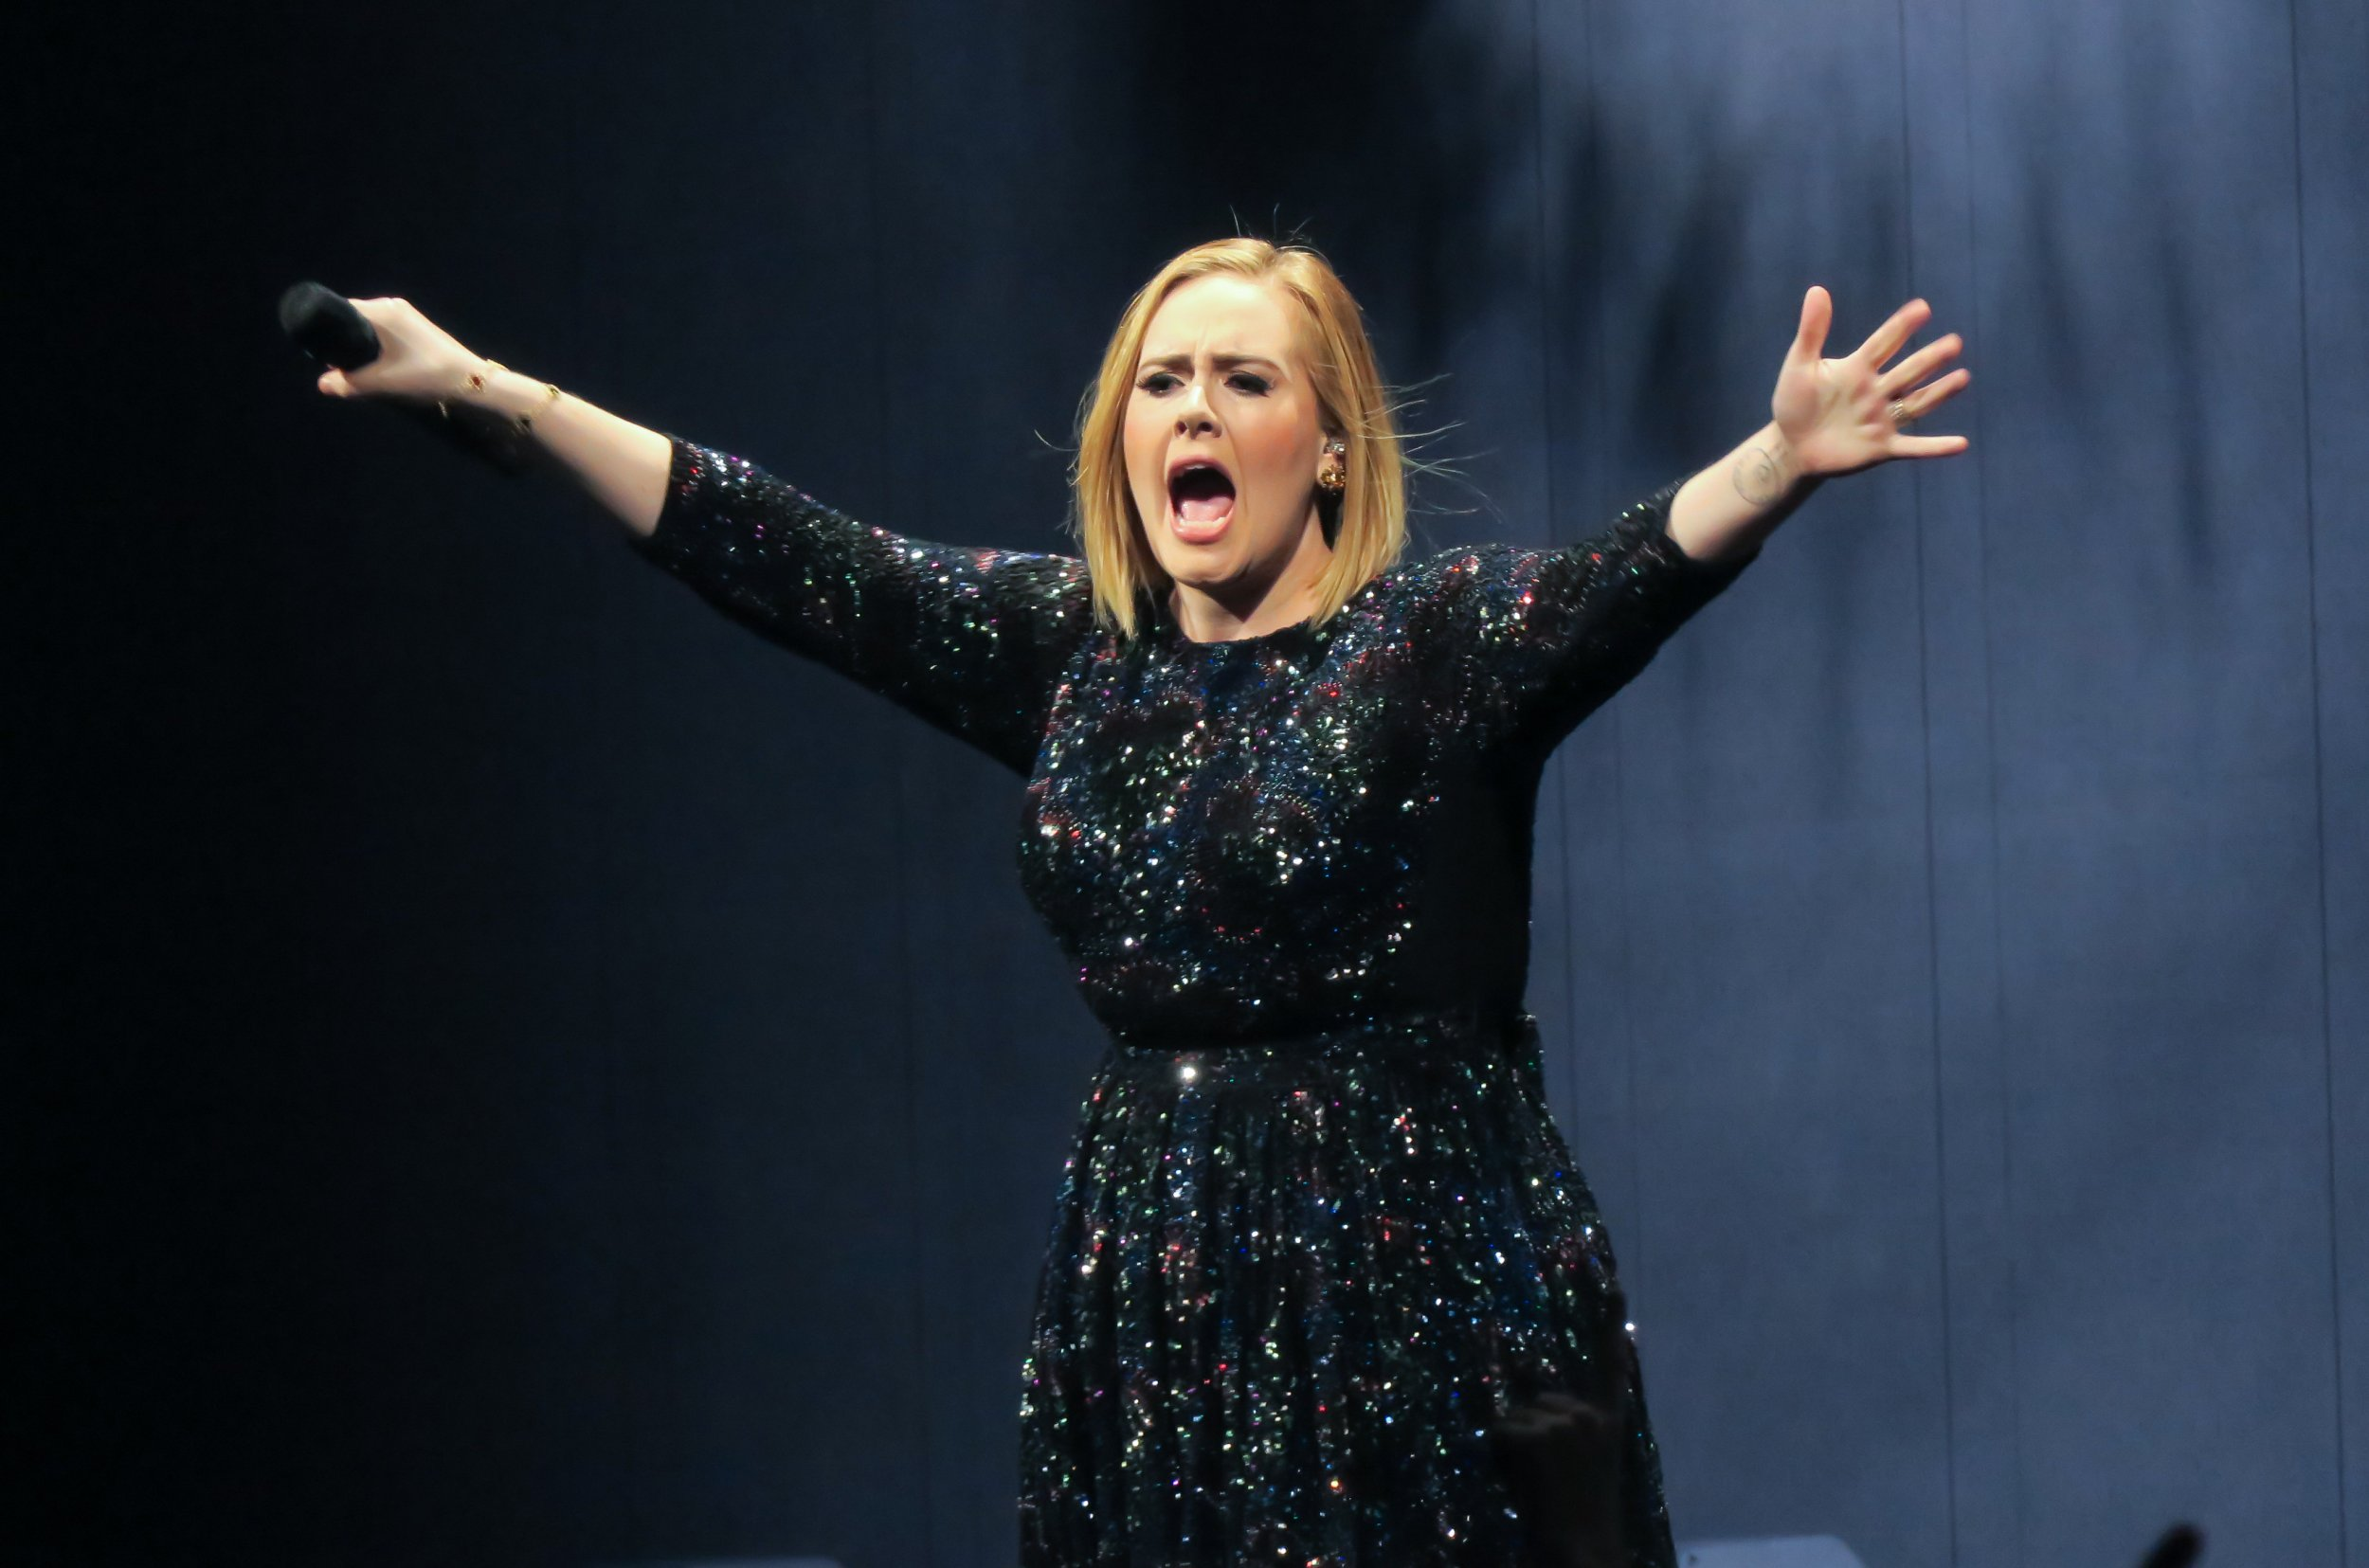 Here are the four stages of attempting to buy Adele tickets